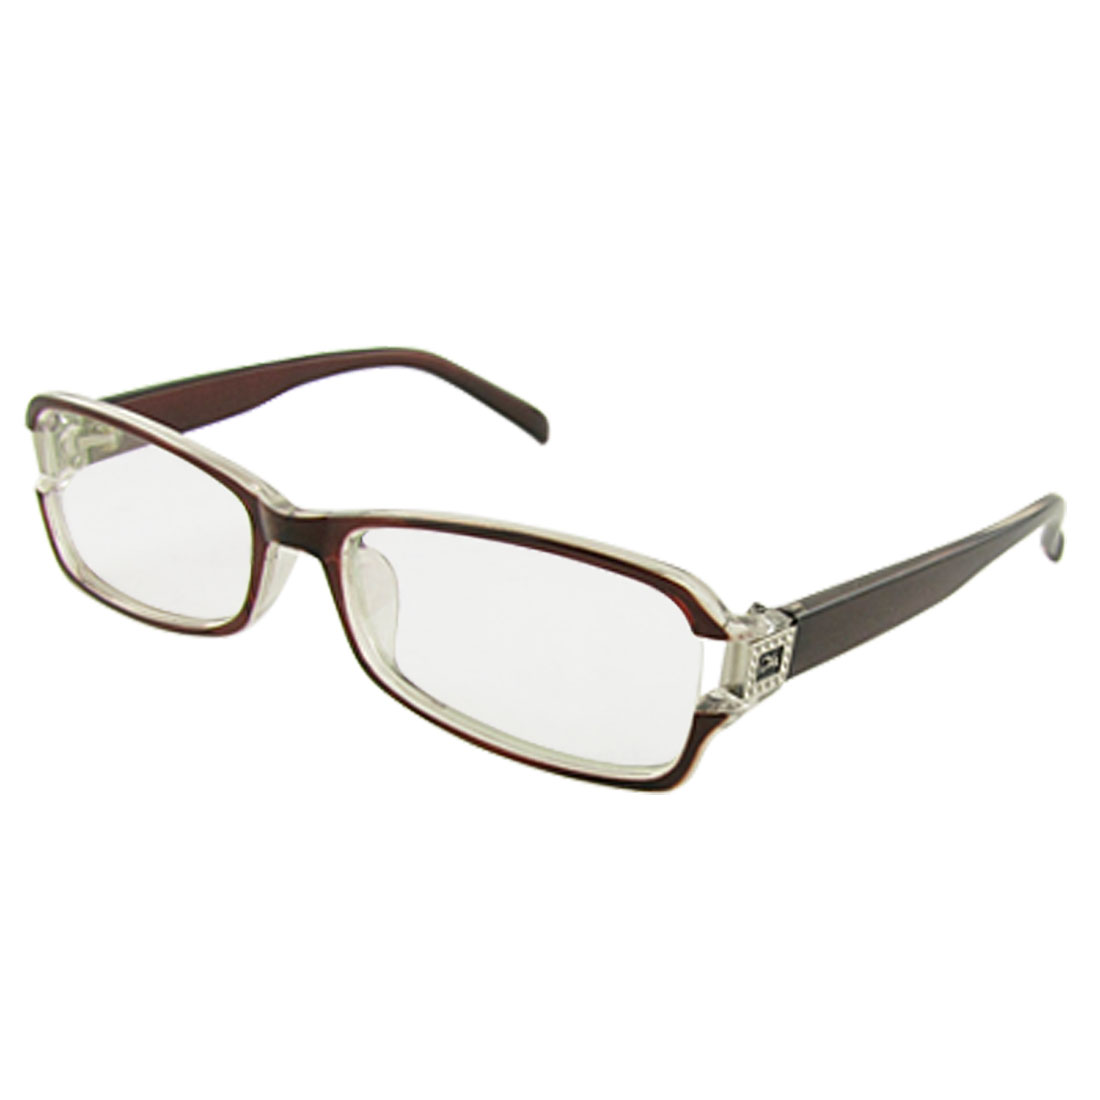 Brown Full Frame Rectangle Lens Single Bridge Plano Glasses